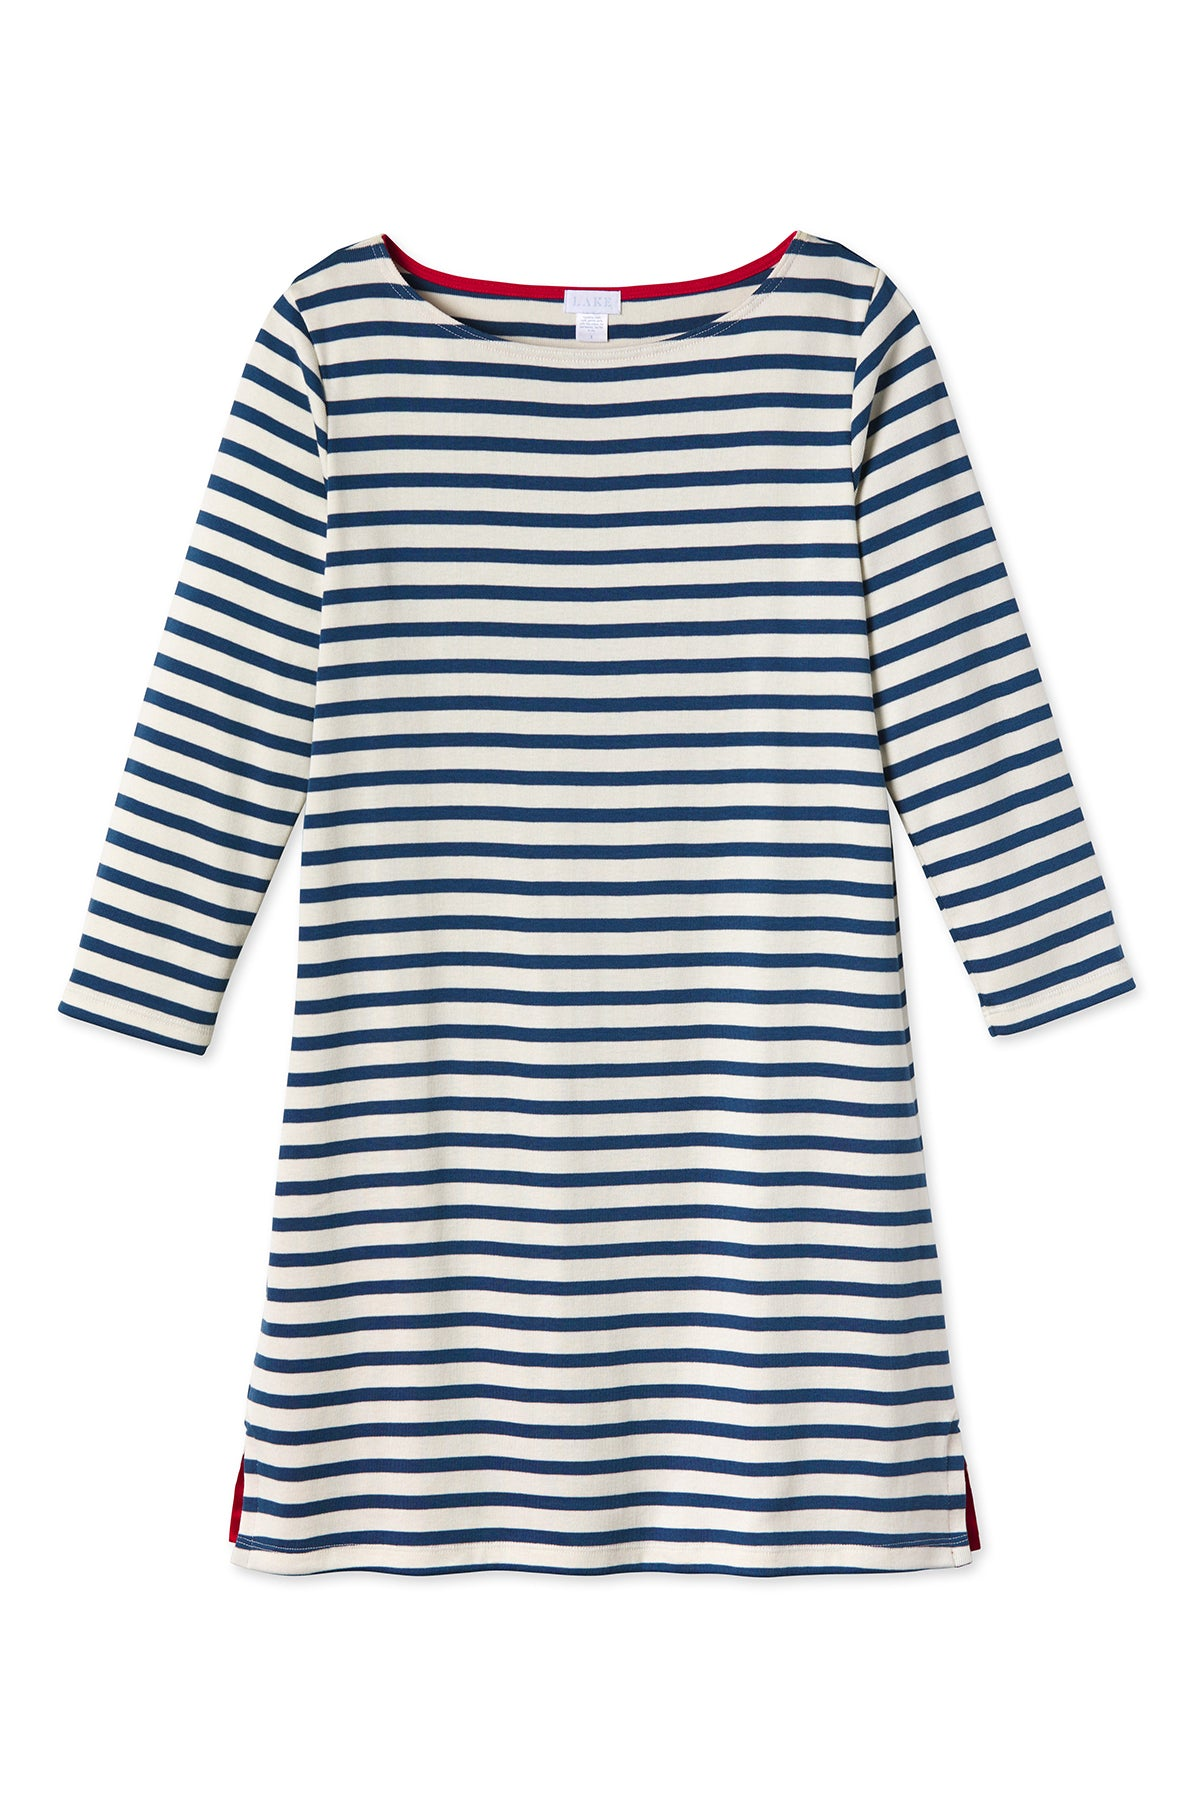 Breton Dress in Navy